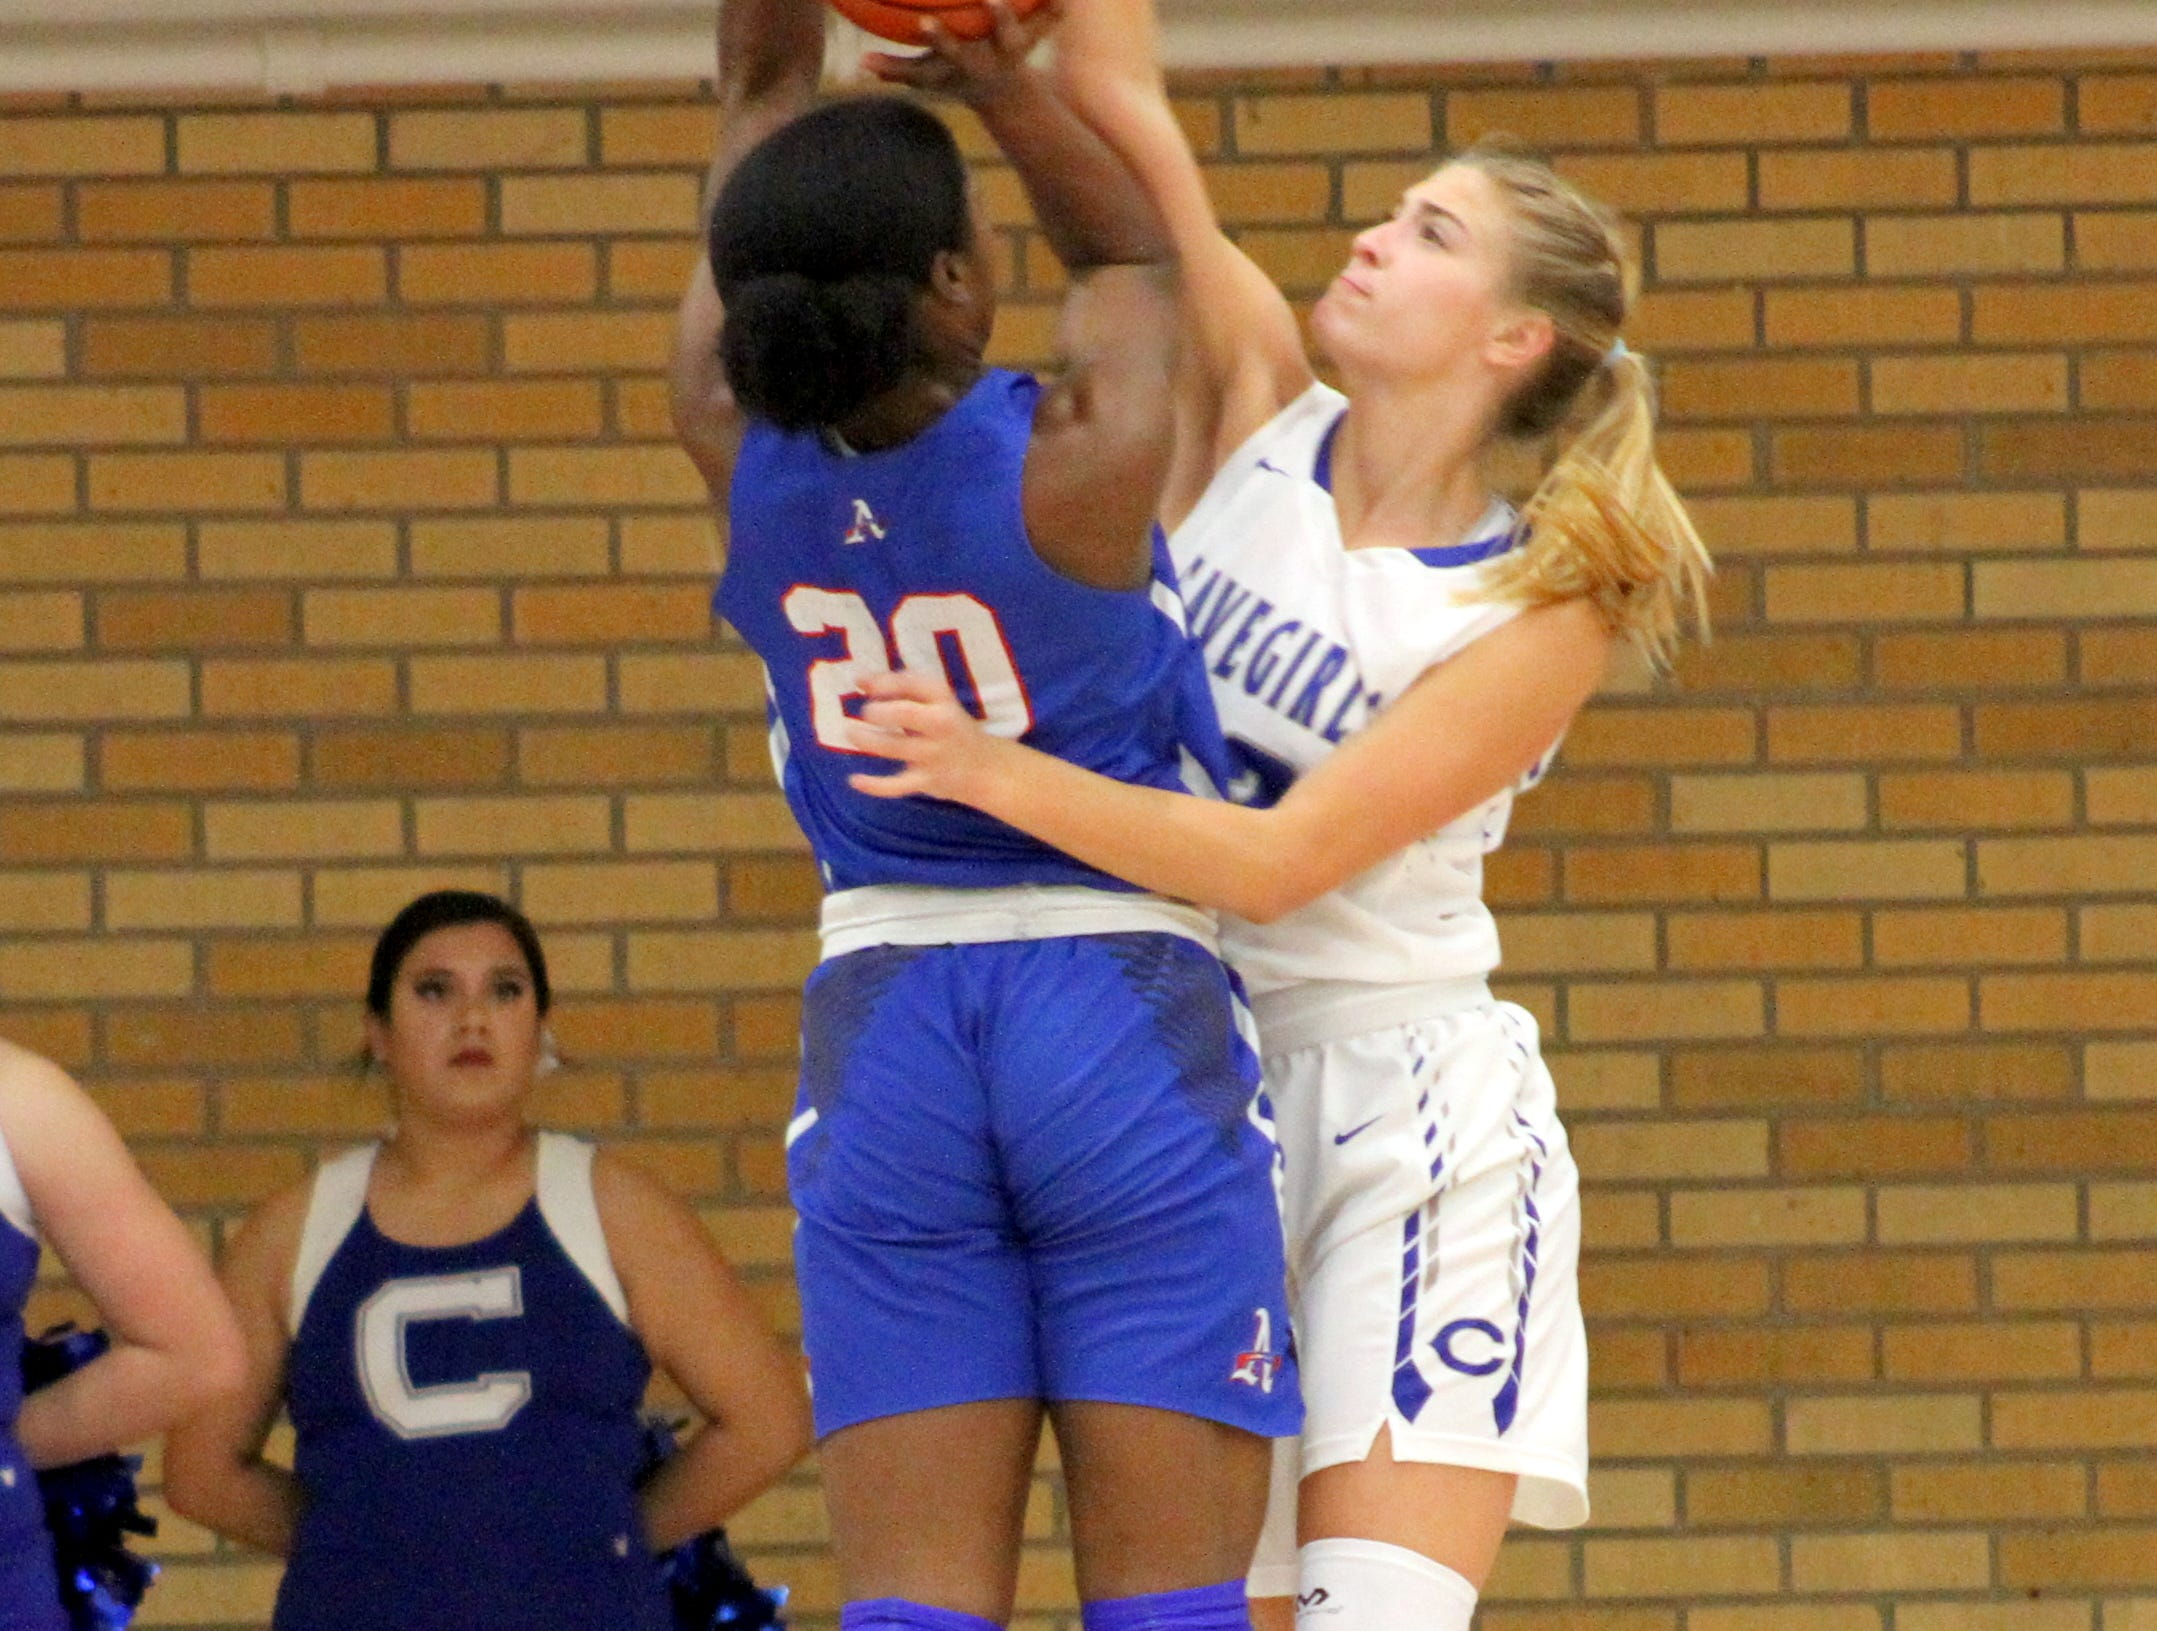 Carlsbad's Jordan Boatwright goes for a block against an Americas player during Monday's game.